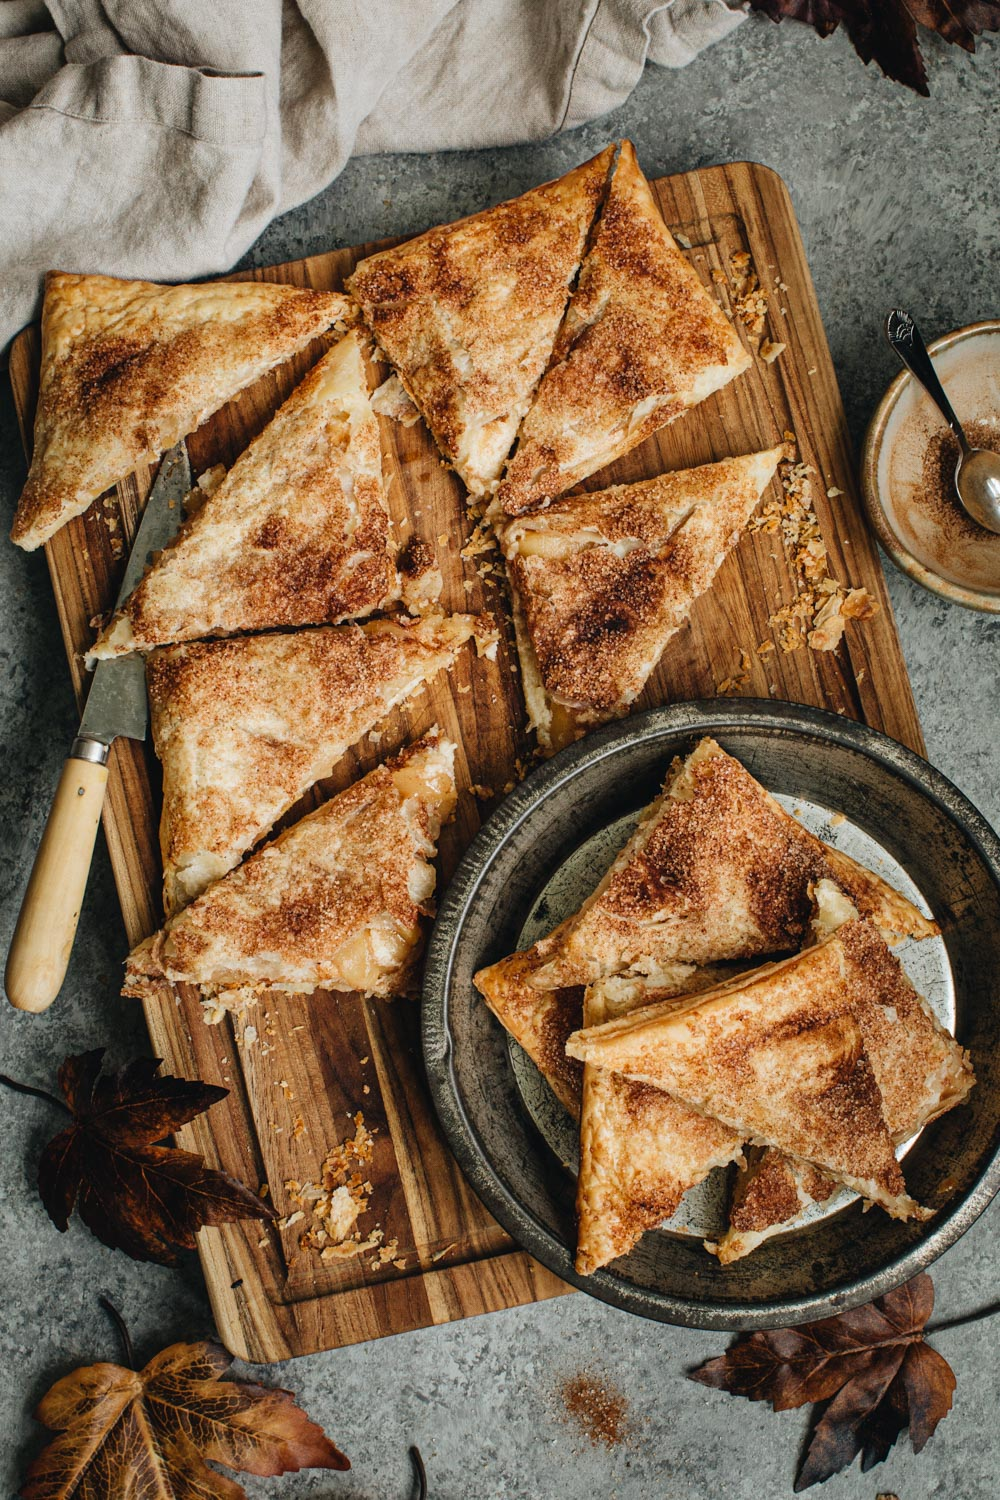 Apple cheese danish sliced into a triangle shape on a wooden cutting board and on a metal tin.